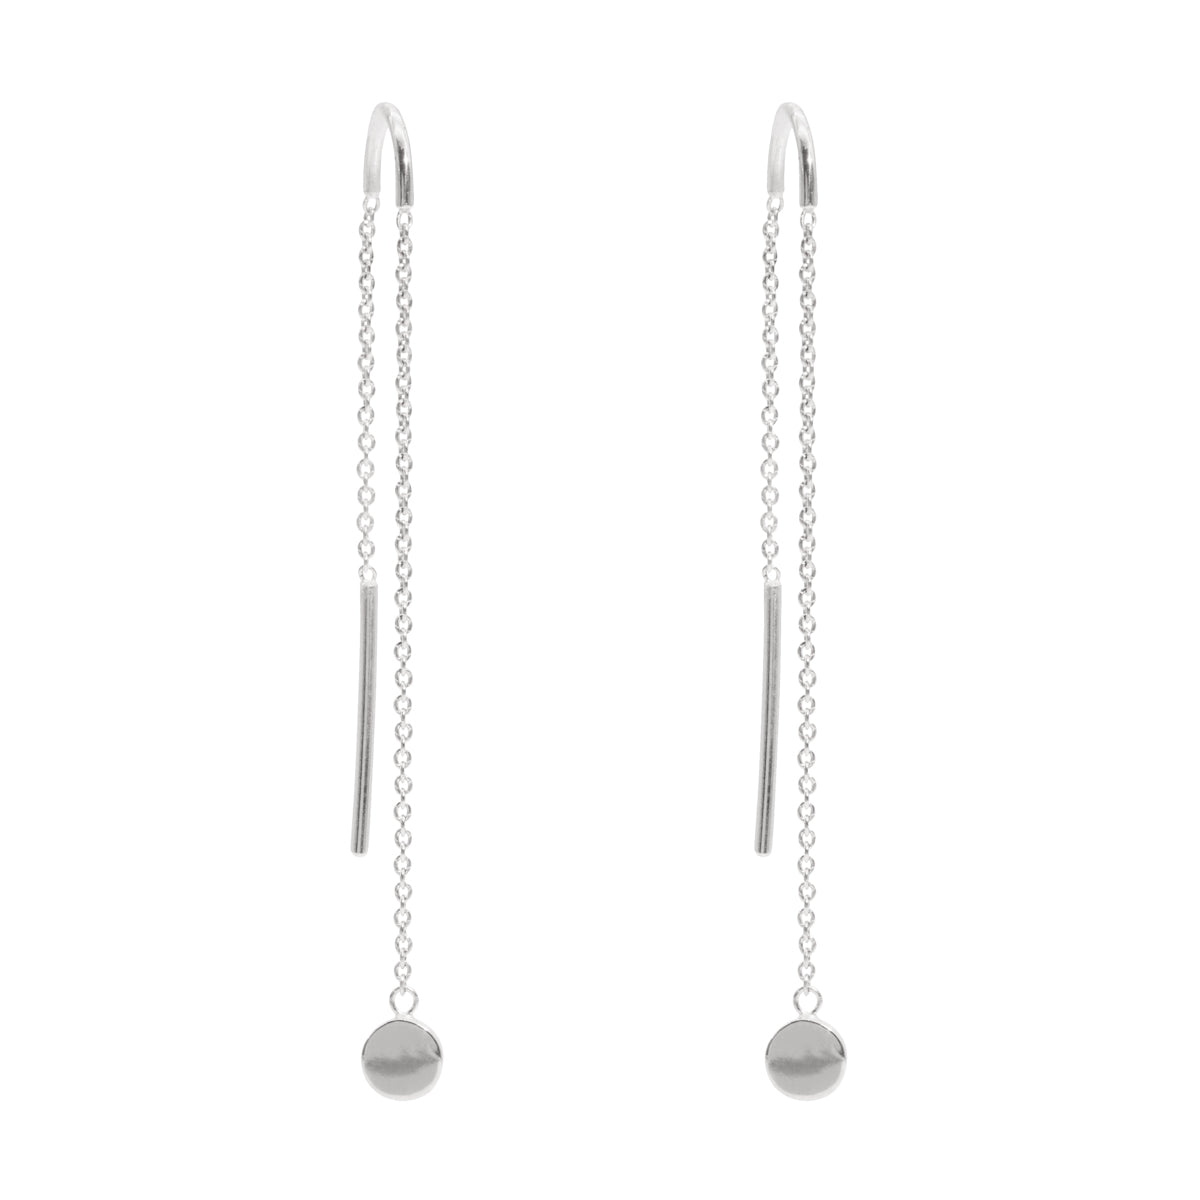 The Silver Motion Threader Earrings